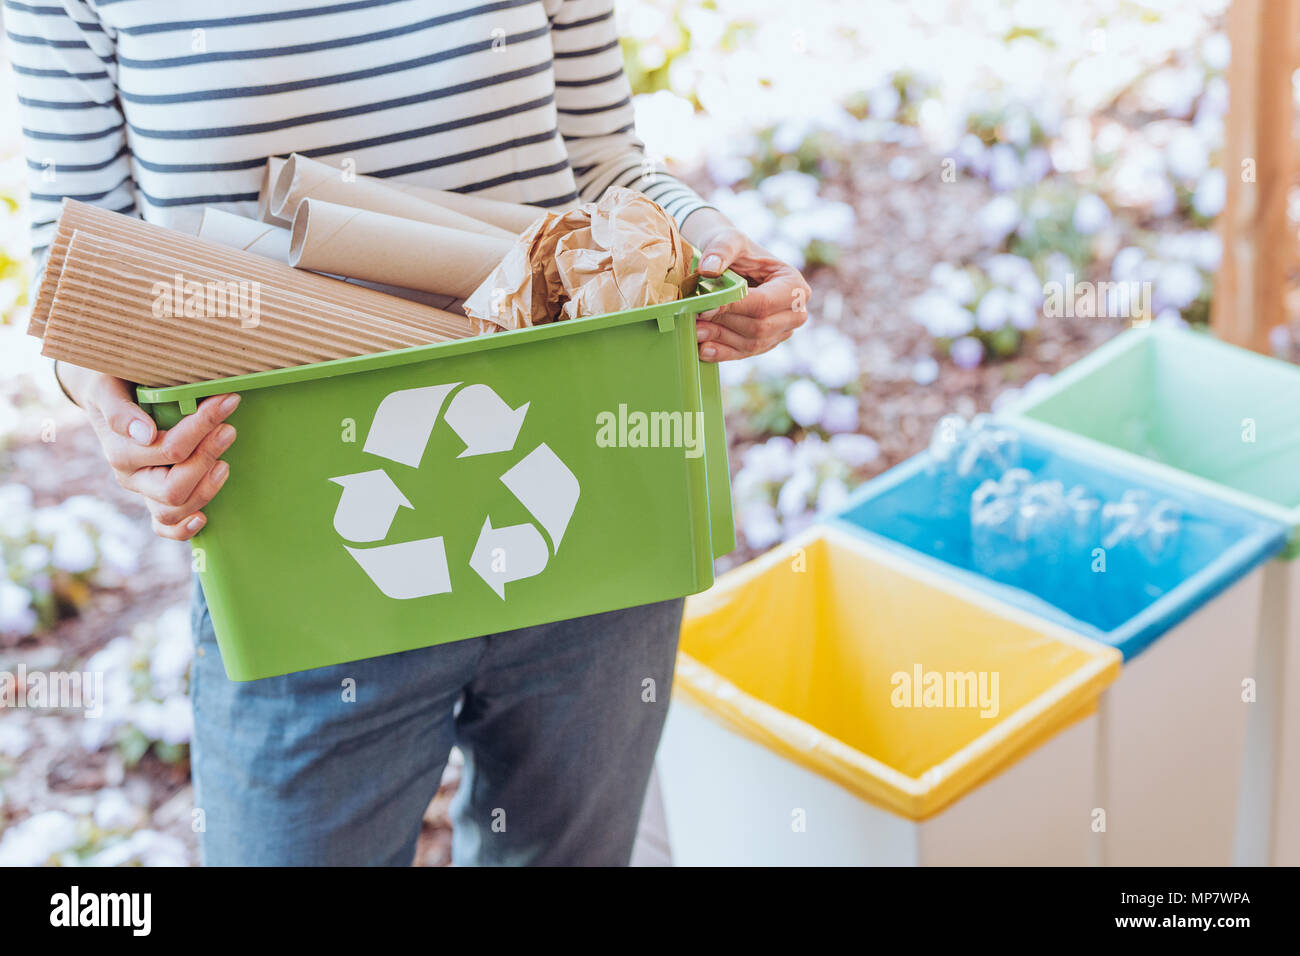 Activist taking care of environment, sorting paper waste to proper recycling bin on terrace Stock Photo